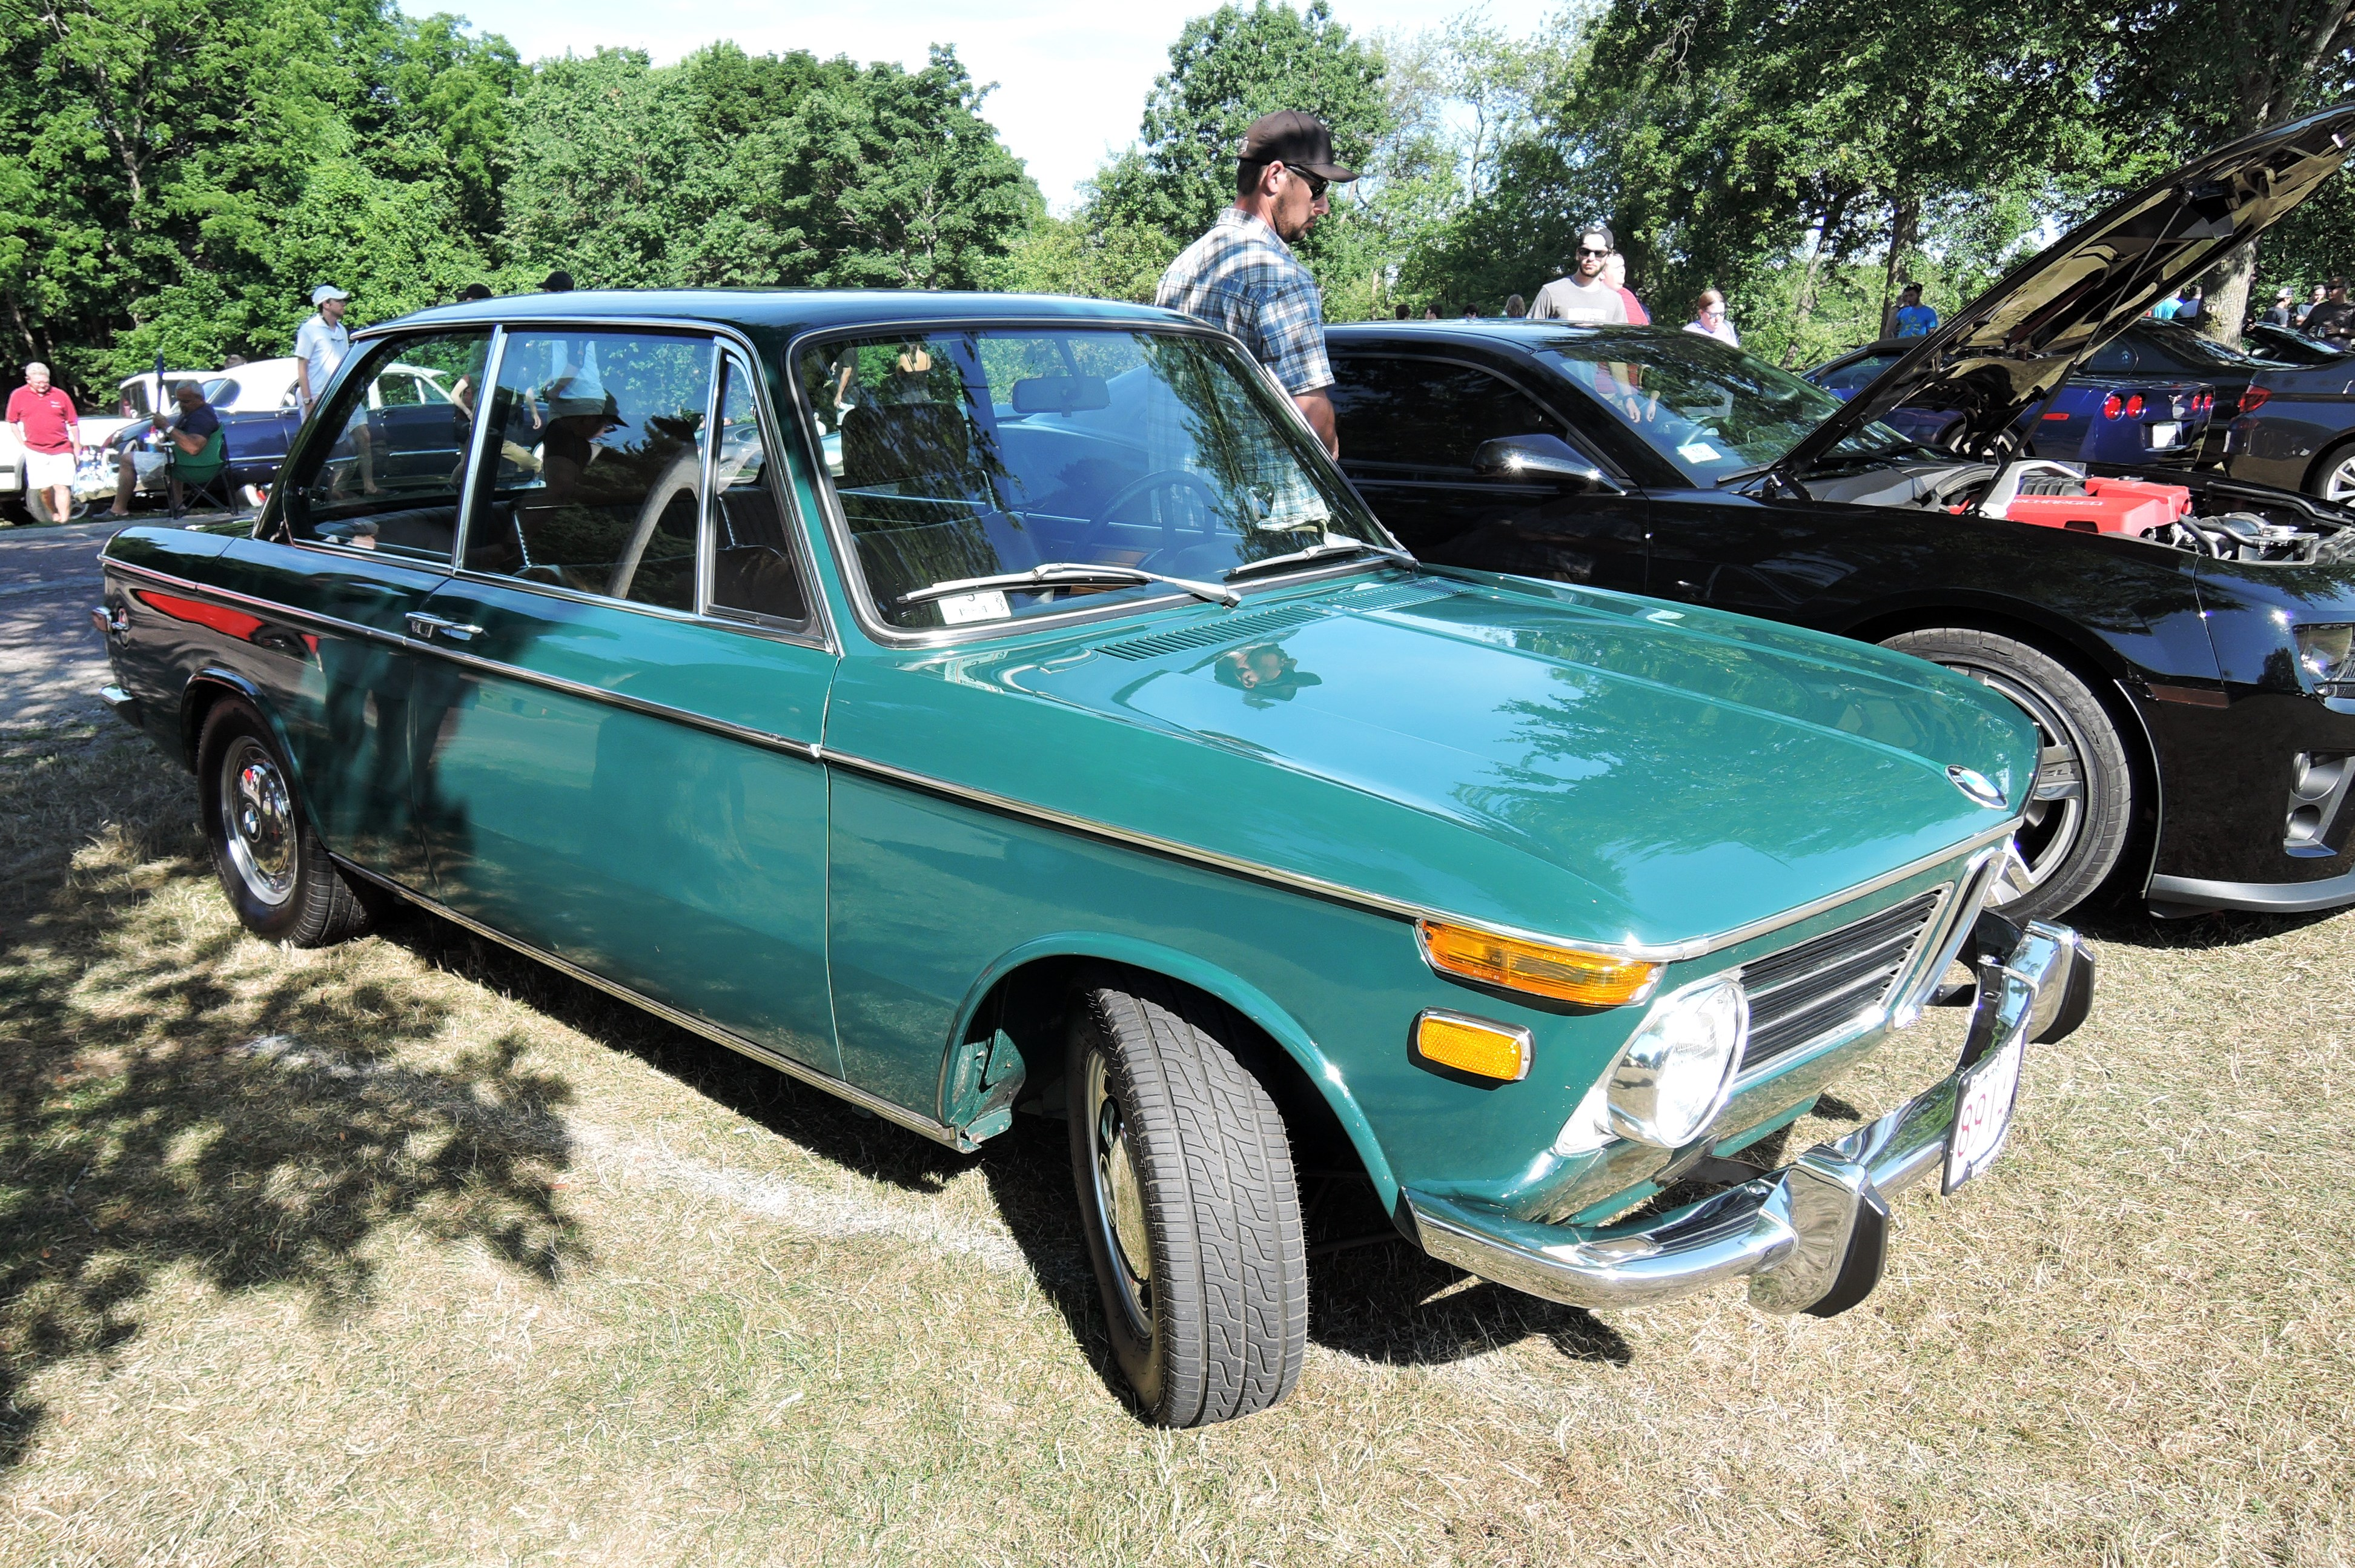 green bmw 2002 - Cars and coffee at larz